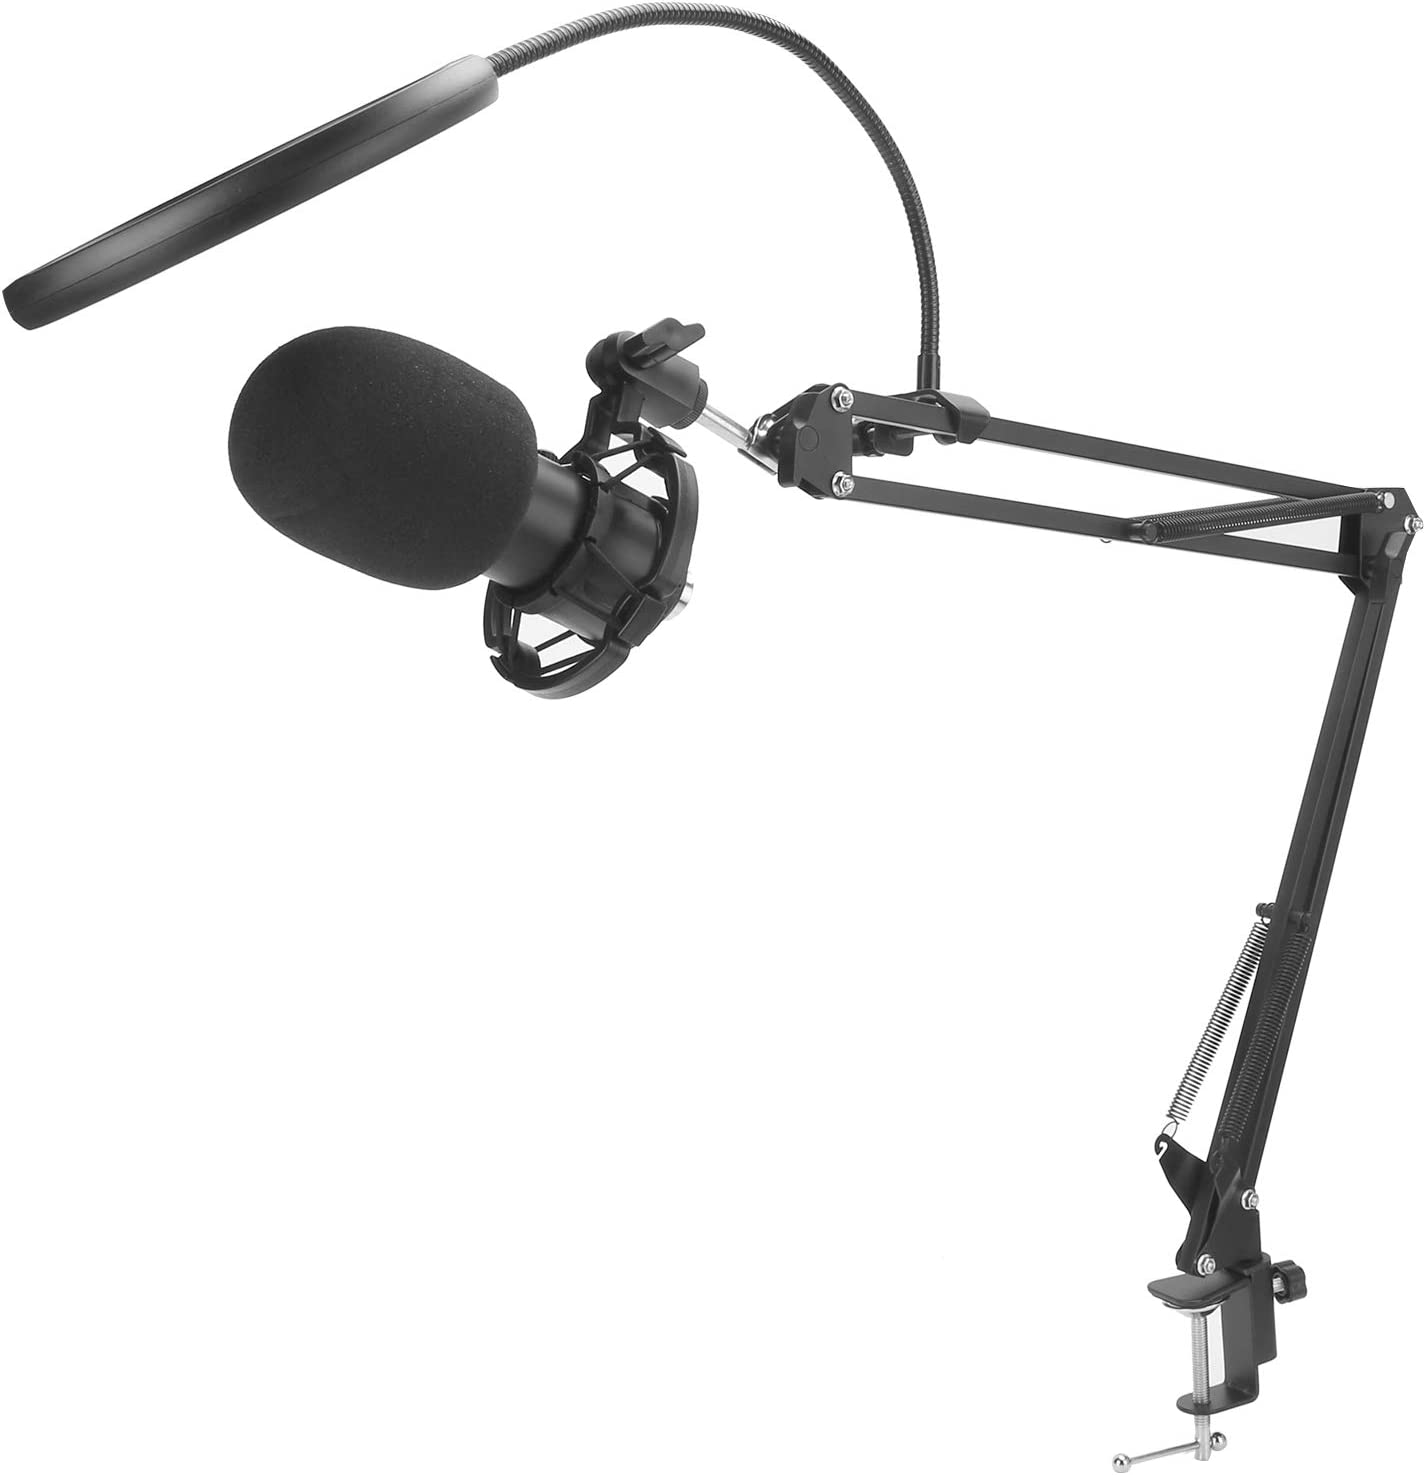 70 USB Computer Microphone discount Blowout Cardioid Condenser Prevention Max 42% OFF